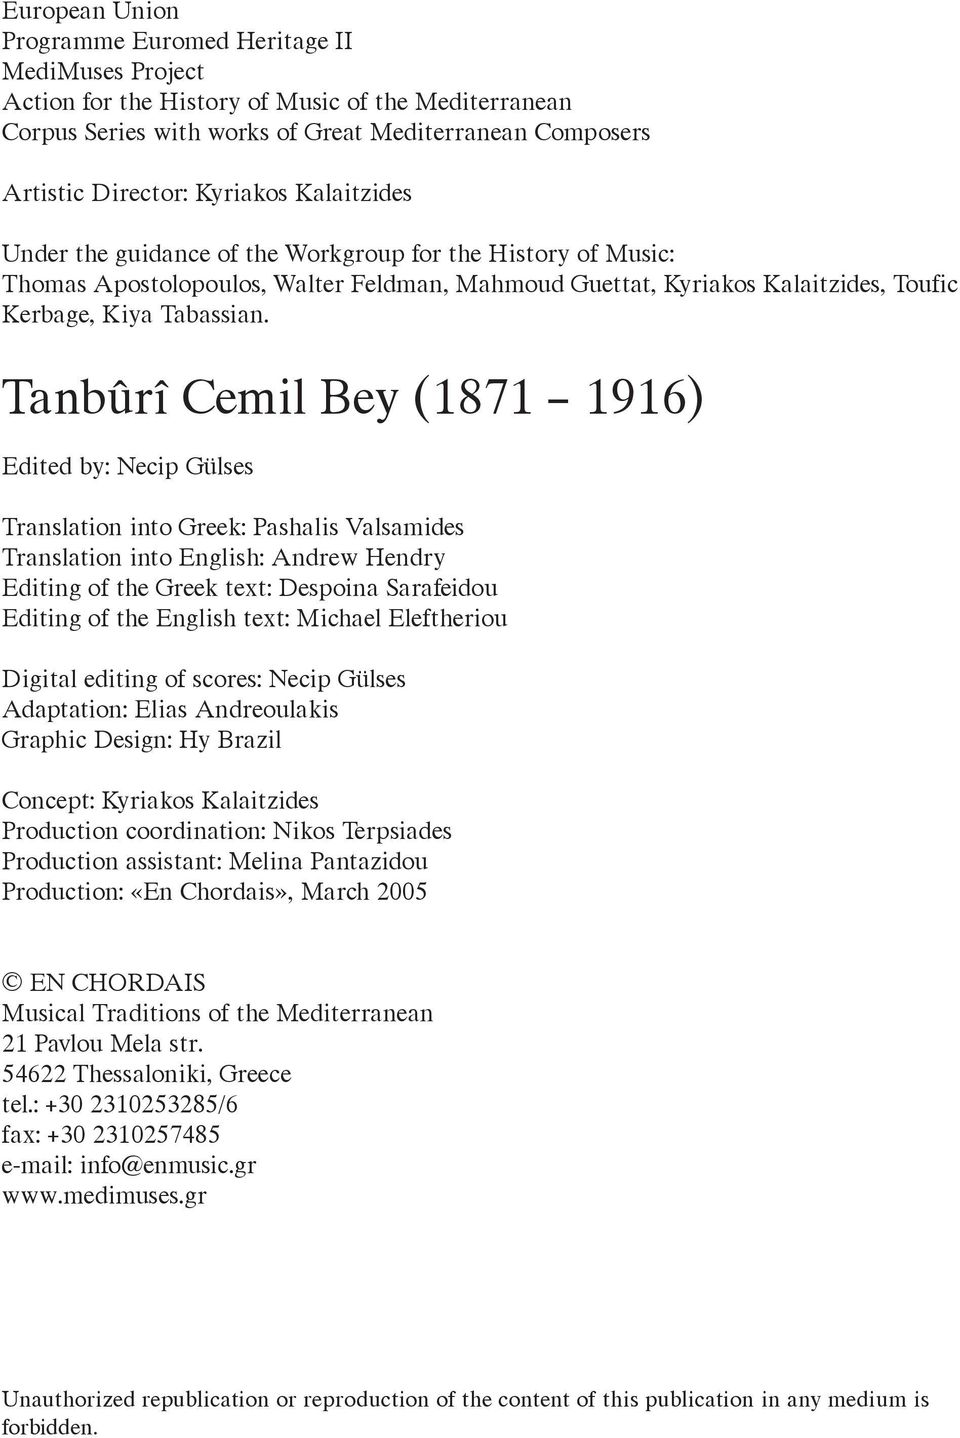 Tanbûrî Cemil Bey (1871 1916) Edited by: Necip Gülses Translation into Greek: Pashalis Valsamides Translation into English: Andrew Hendry Editing of the Greek text: Despoina Sarafeidou Editing of the